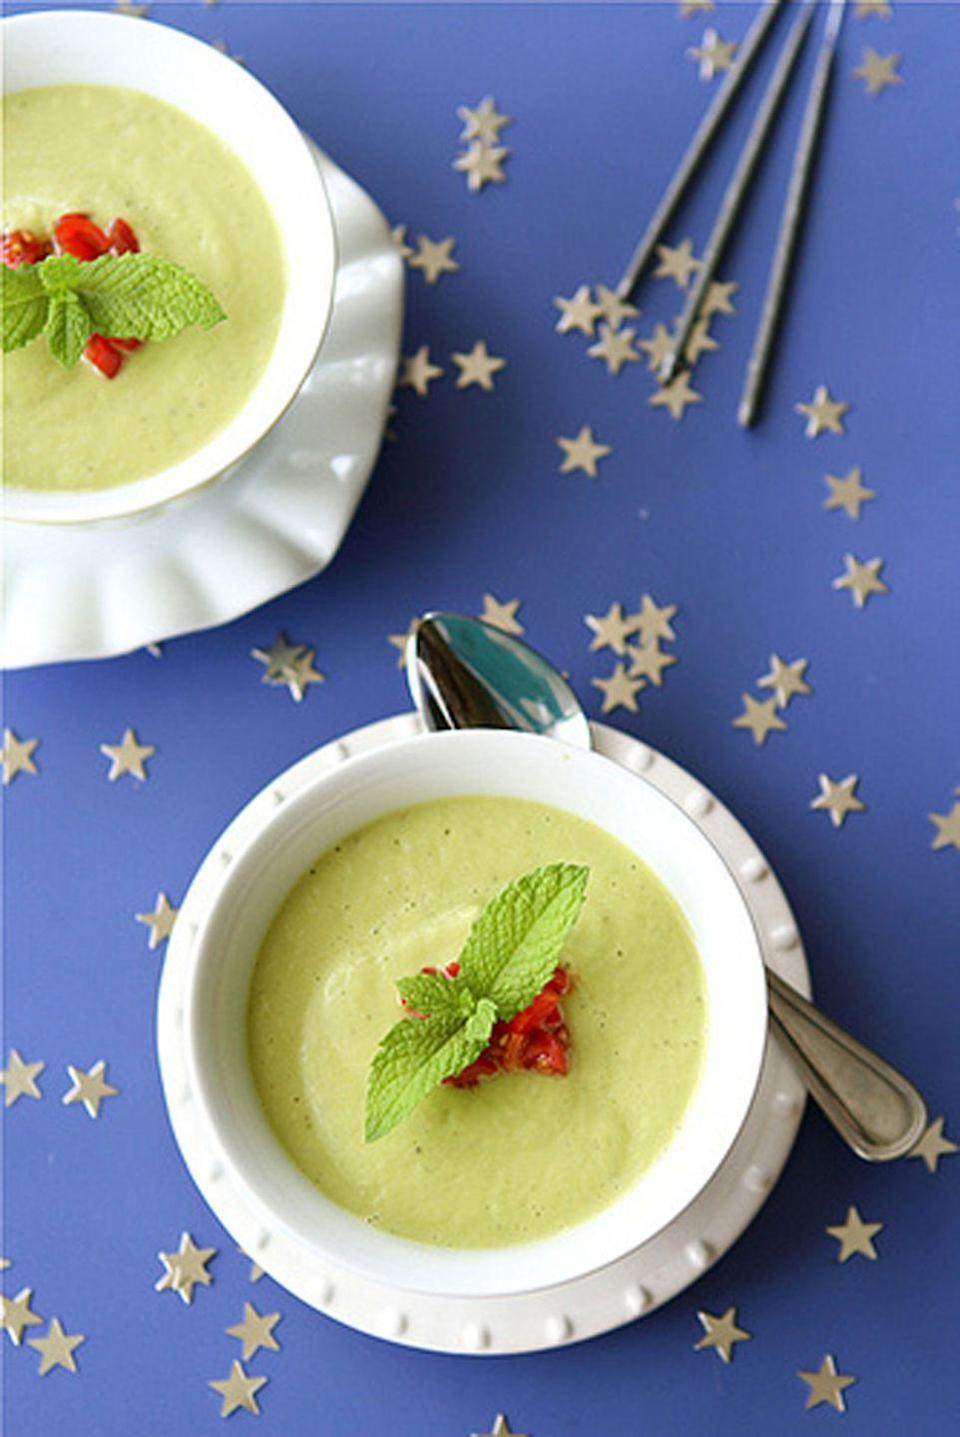 """<p>This blogger writes that avocados make this soup """"rich and satisfying"""" and recommends serving it as an appetizer.</p><p><strong>Get the recipe at <a href=""""https://www.cookincanuck.com/chilled-california-avocado-soup-with-coconut-milk-recipe/"""" rel=""""nofollow noopener"""" target=""""_blank"""" data-ylk=""""slk:Cookin Canuck"""" class=""""link rapid-noclick-resp"""">Cookin Canuck</a>.</strong></p>"""